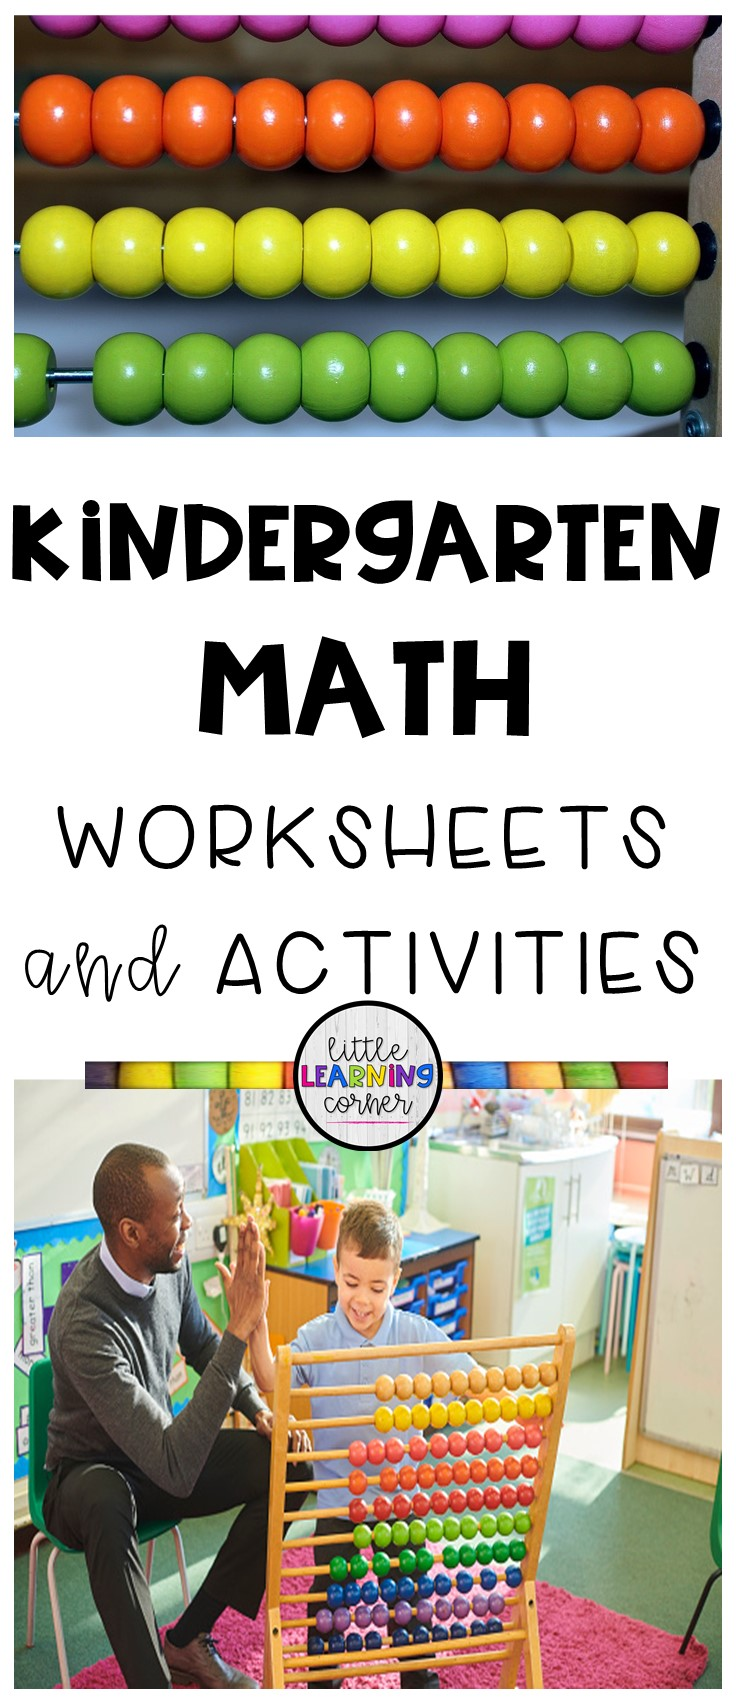 kindergarten-math-worksheets-pin